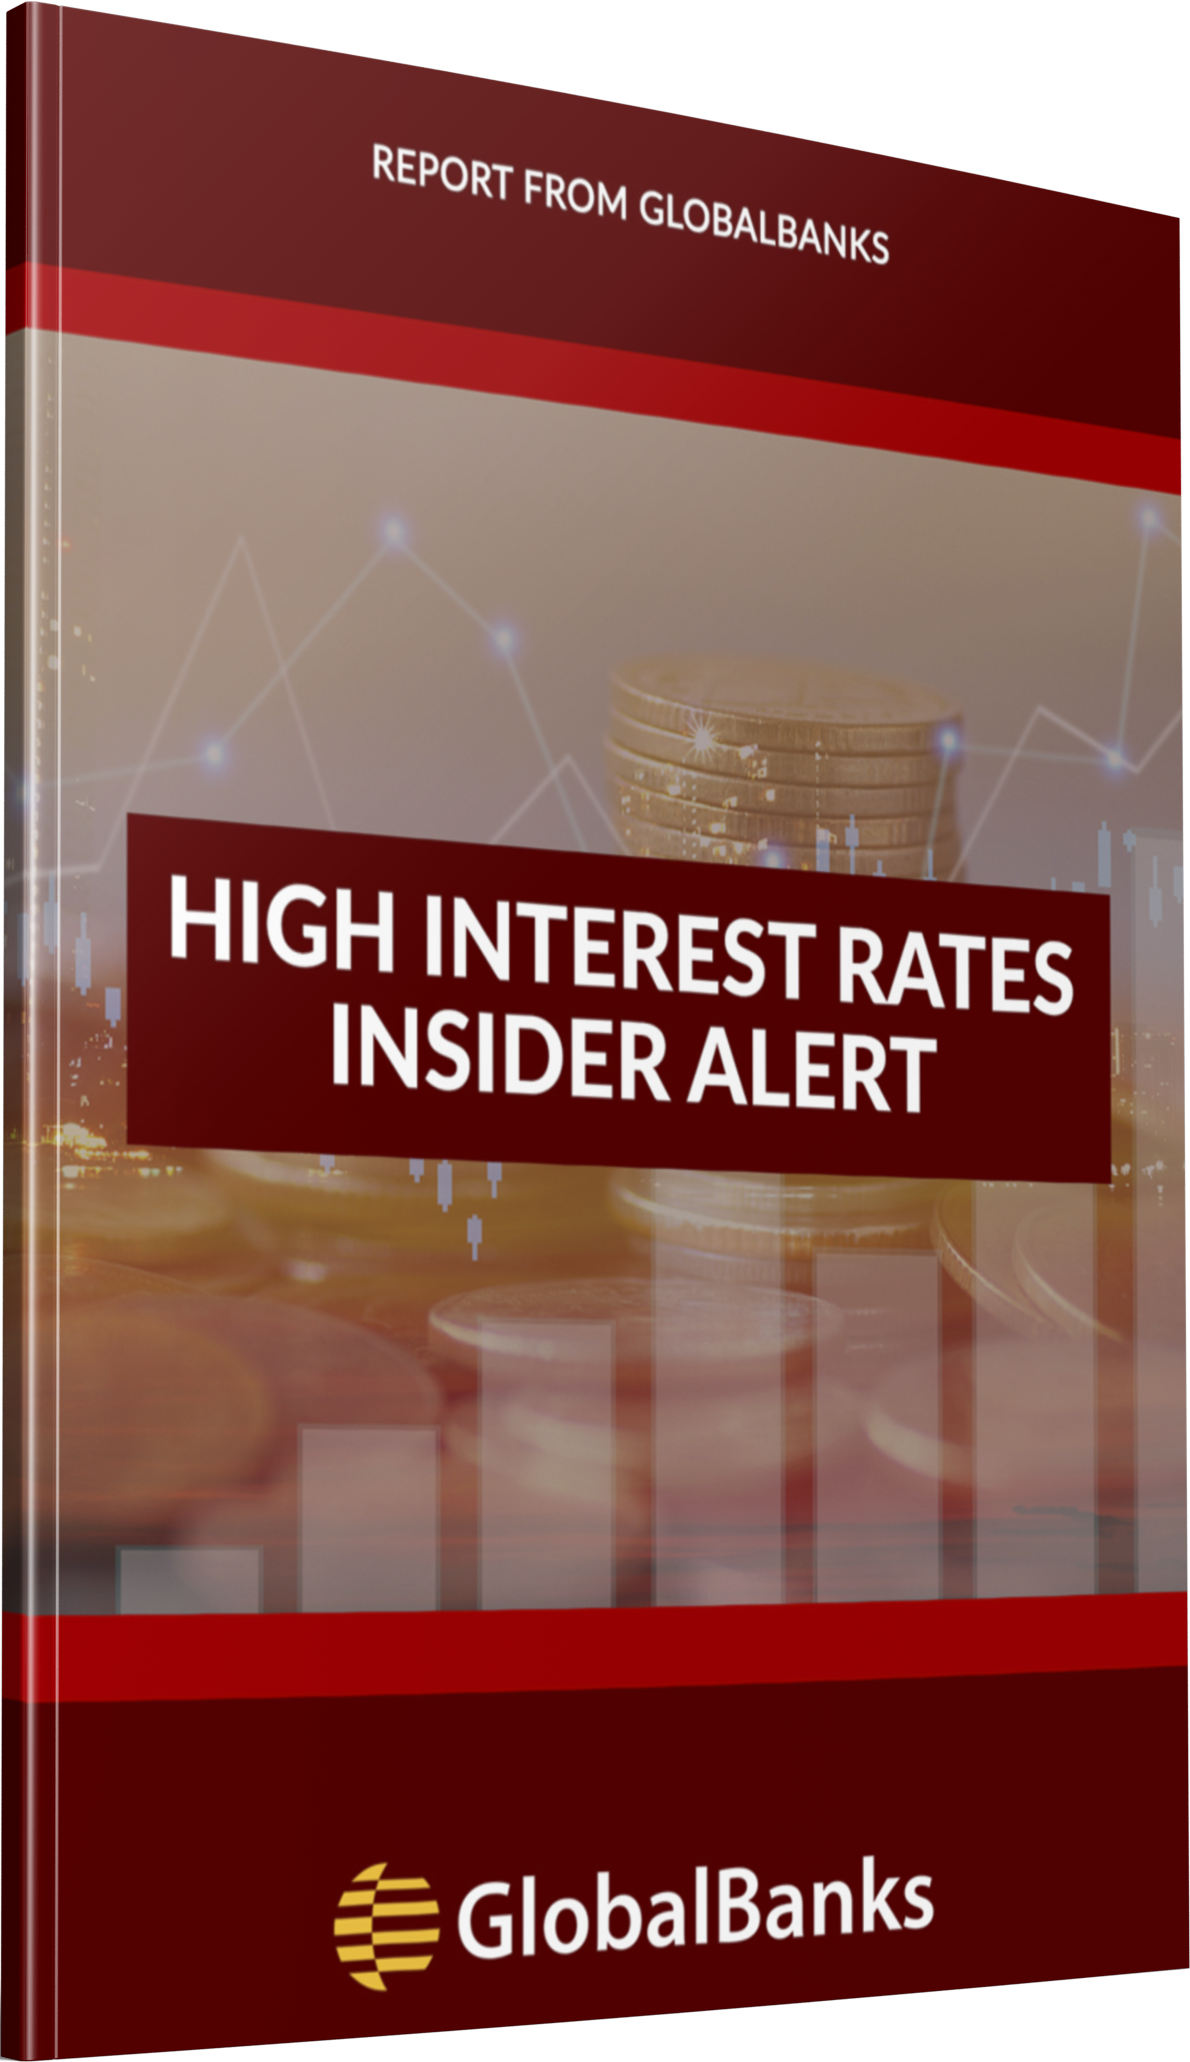 highest interest rates in the world